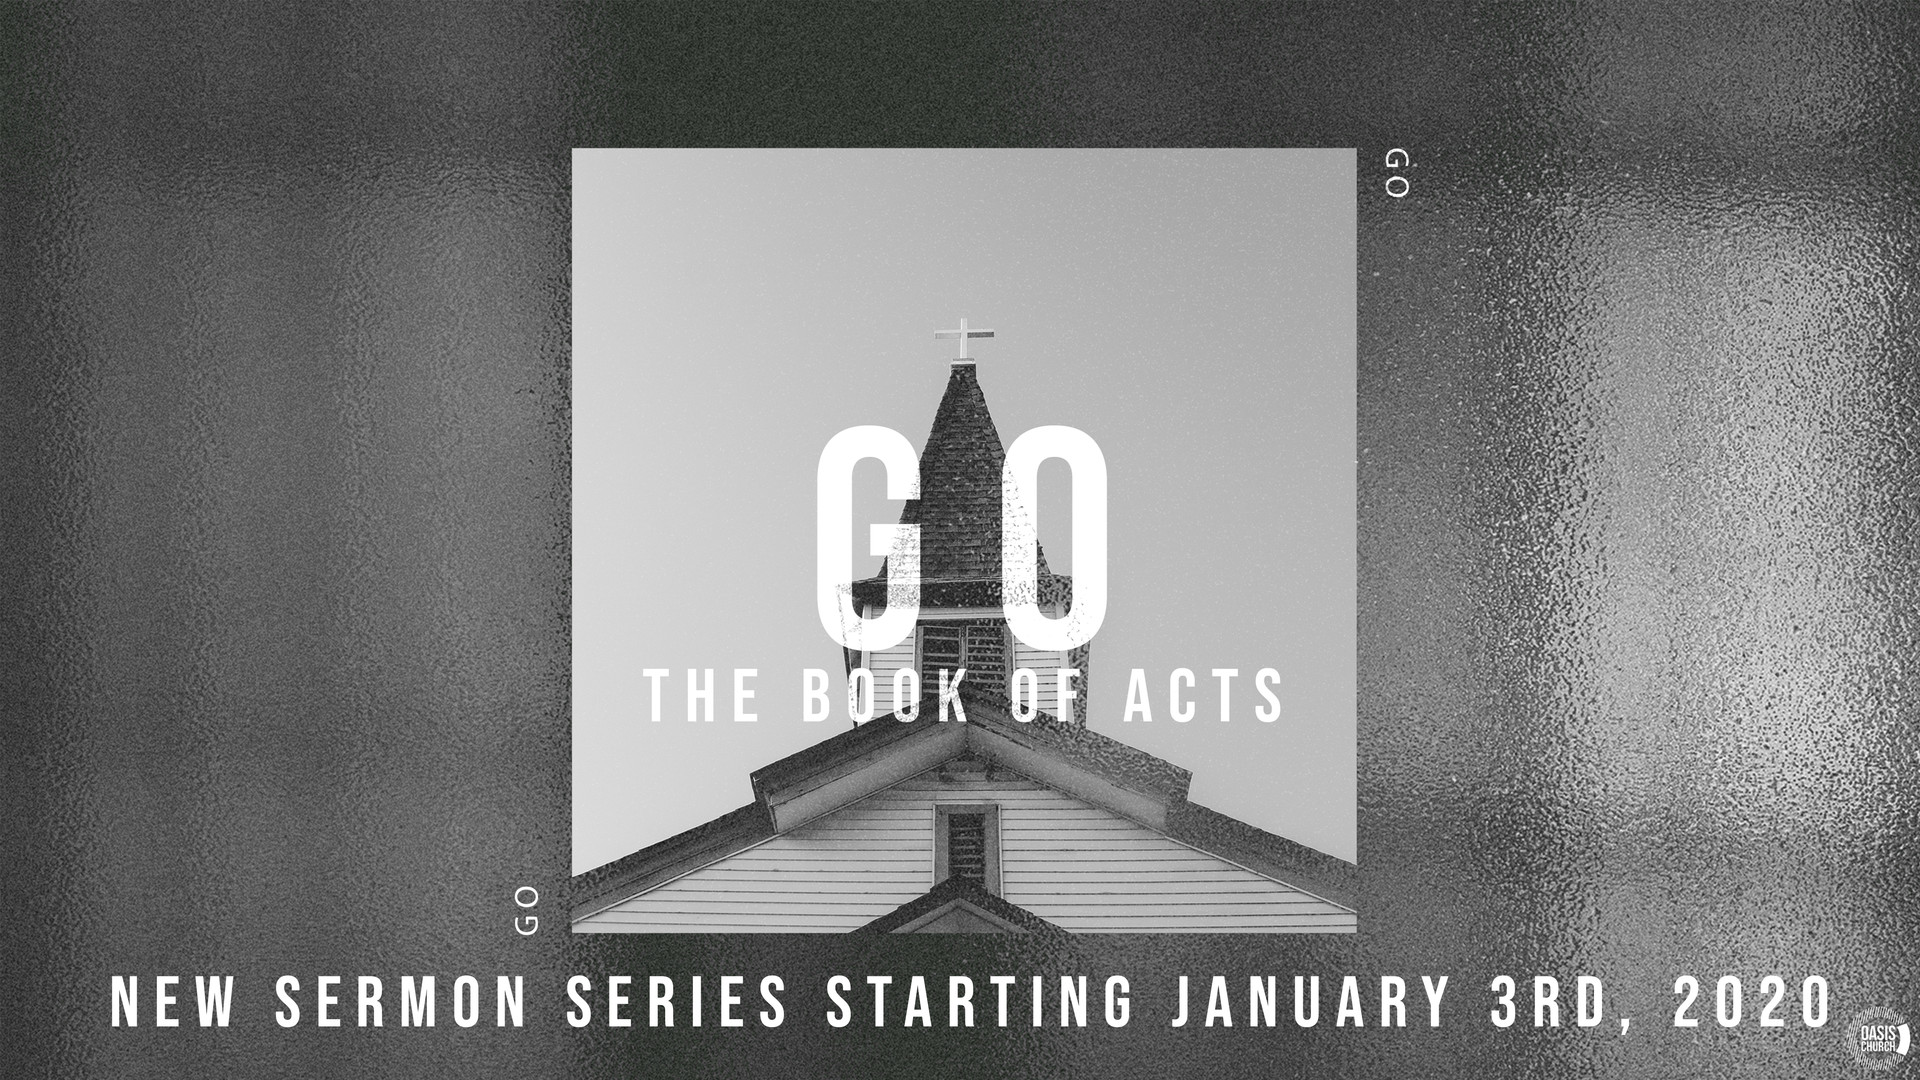 Go: The Book Of Acts